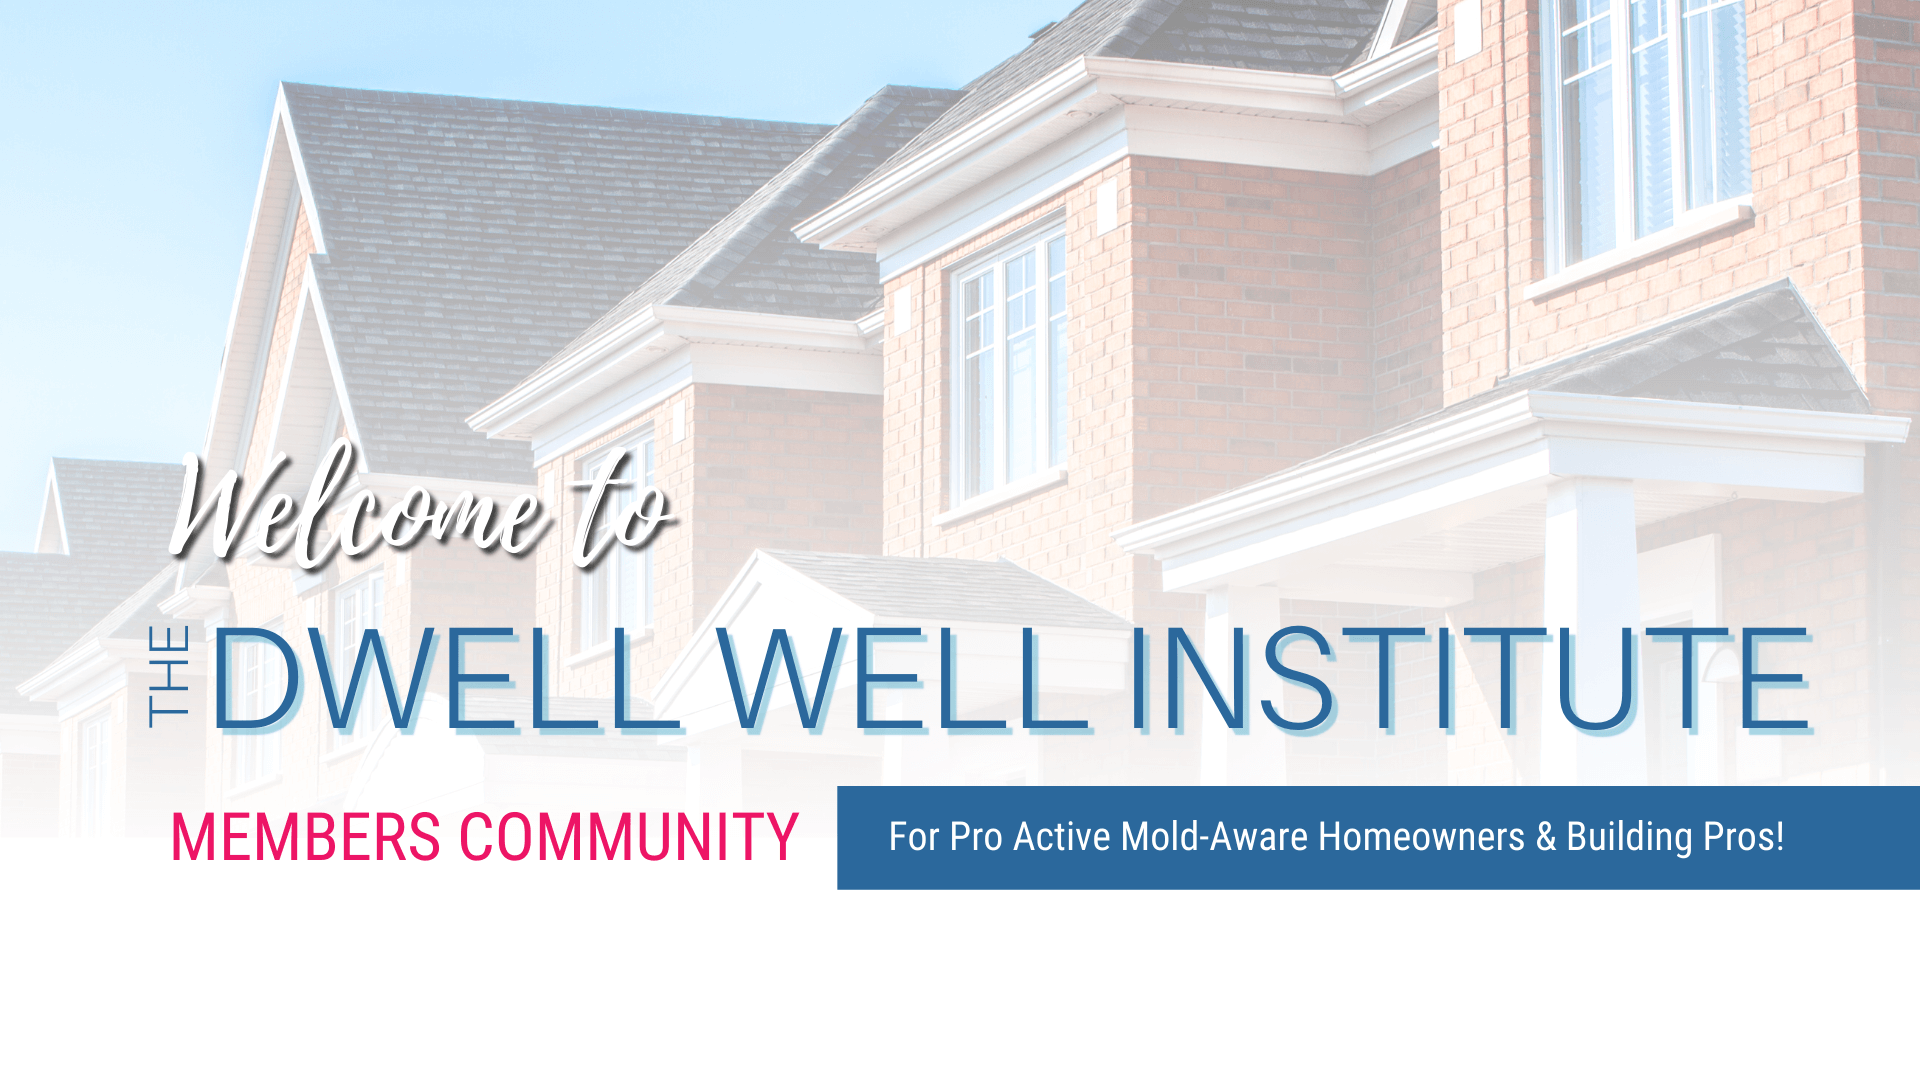 The Online Education Community and Membership for mold-aware Homeowners and Building Professionals